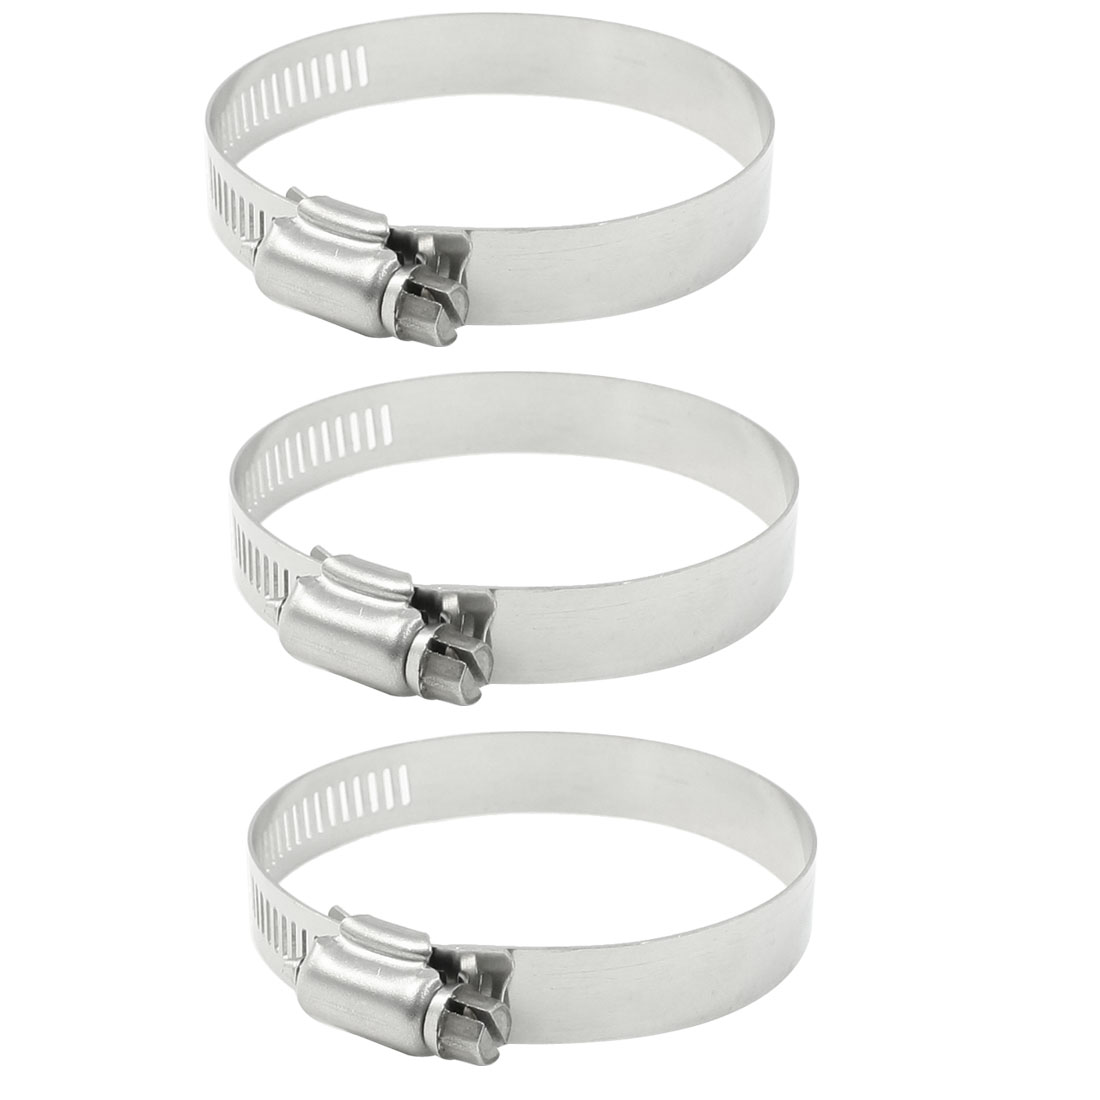 3 Pcs 12mm Width Stainless Steel Bend Worm Drive Hose Clamp Hoop 46-70mm